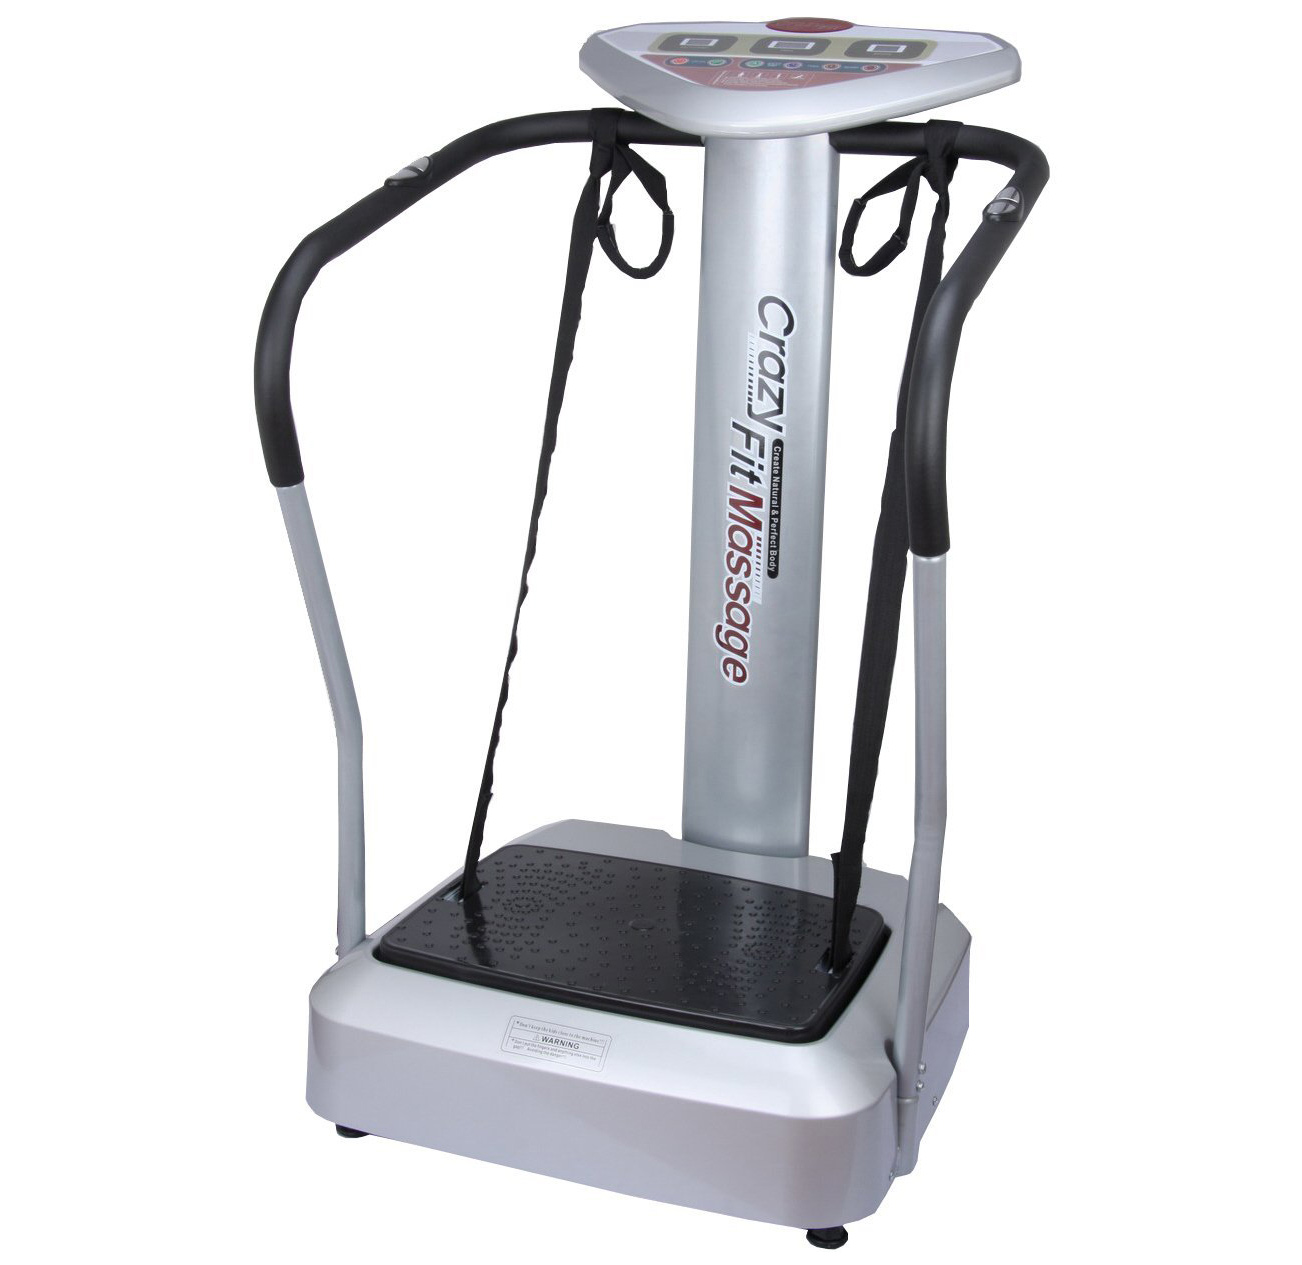 Fitness Equipment Yorkshire: Vibro Plate Hire In Hull & East Yorkshire